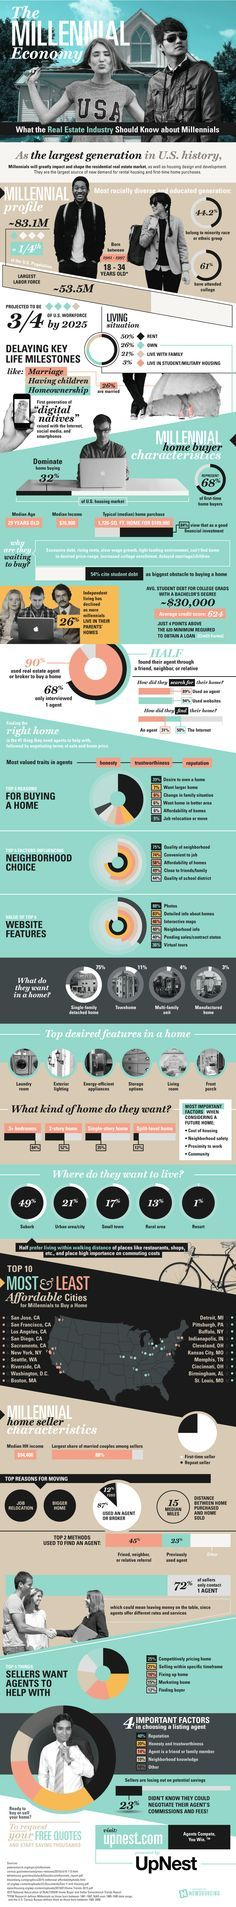 #INFOGRAPHIC: What the Real Estate Industry Needs to Know about Millennials | @upnest